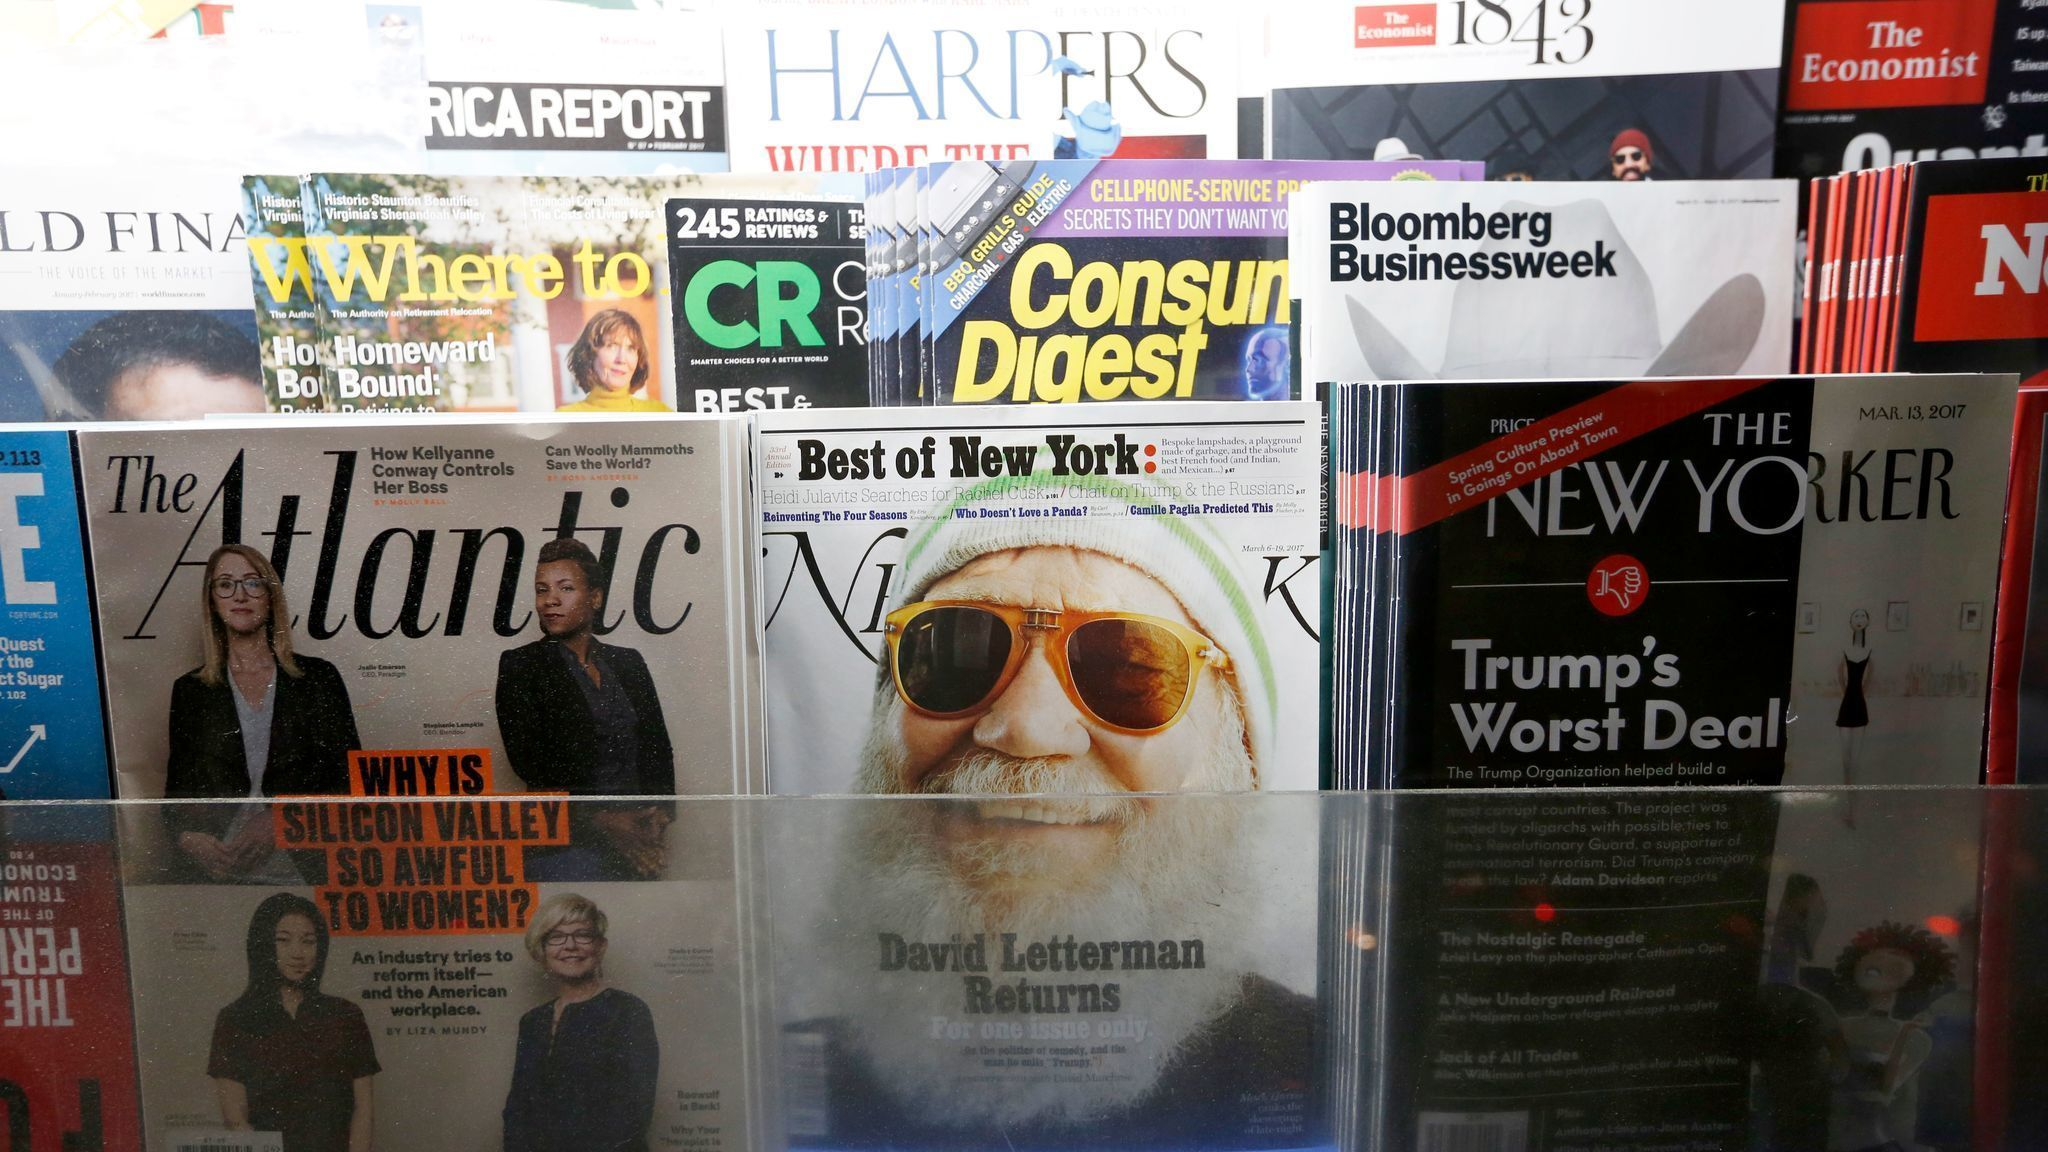 The old magazine scam is alive and well. Here's how to fight back